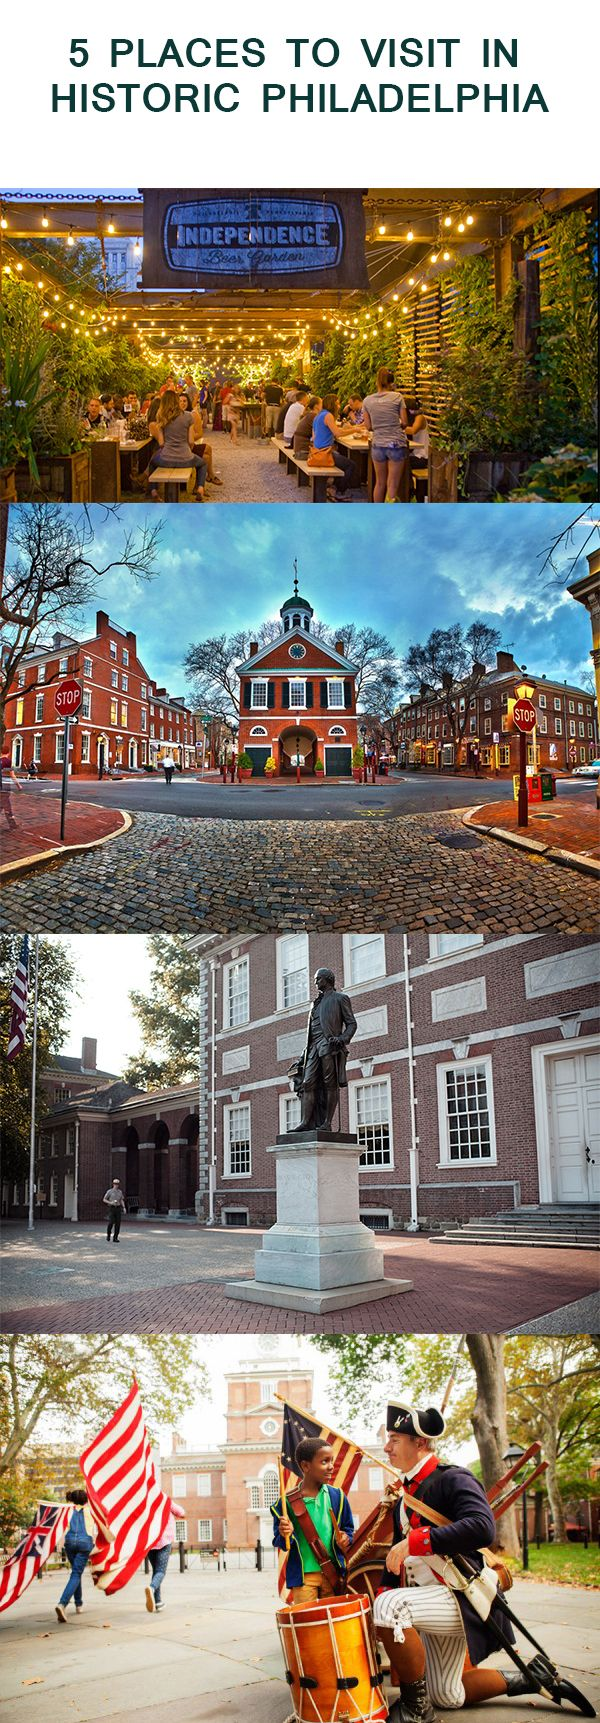 5 PLACES TO VISIT IN HISTORIC PHILADELPHIA BLOG 5 PLACES TO VISIT IN HISTORIC PHILADELPHIA Posted on March 10, 2017  The City of Brotherly Love offers tons to see and do and get this, it's FREE. That's right you heard it right it's FREE.  Embed from Getty Images  Start your day by visiting Independence Visitor Center.  The center has loads of City Tour information. Walk through the ............